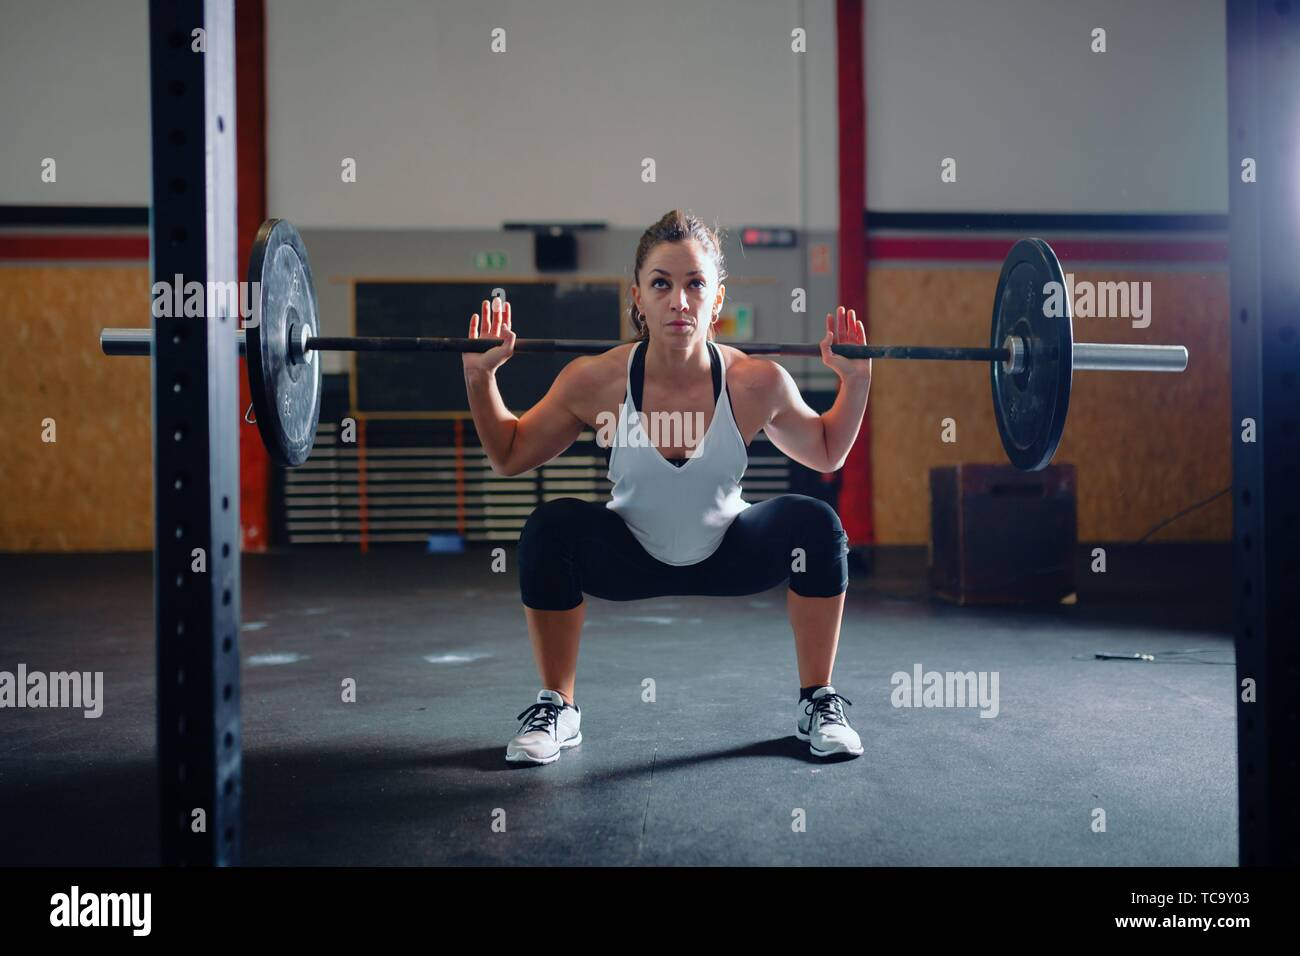 Athletic brunette young woman doing some weightlifting exercises. - Stock Image